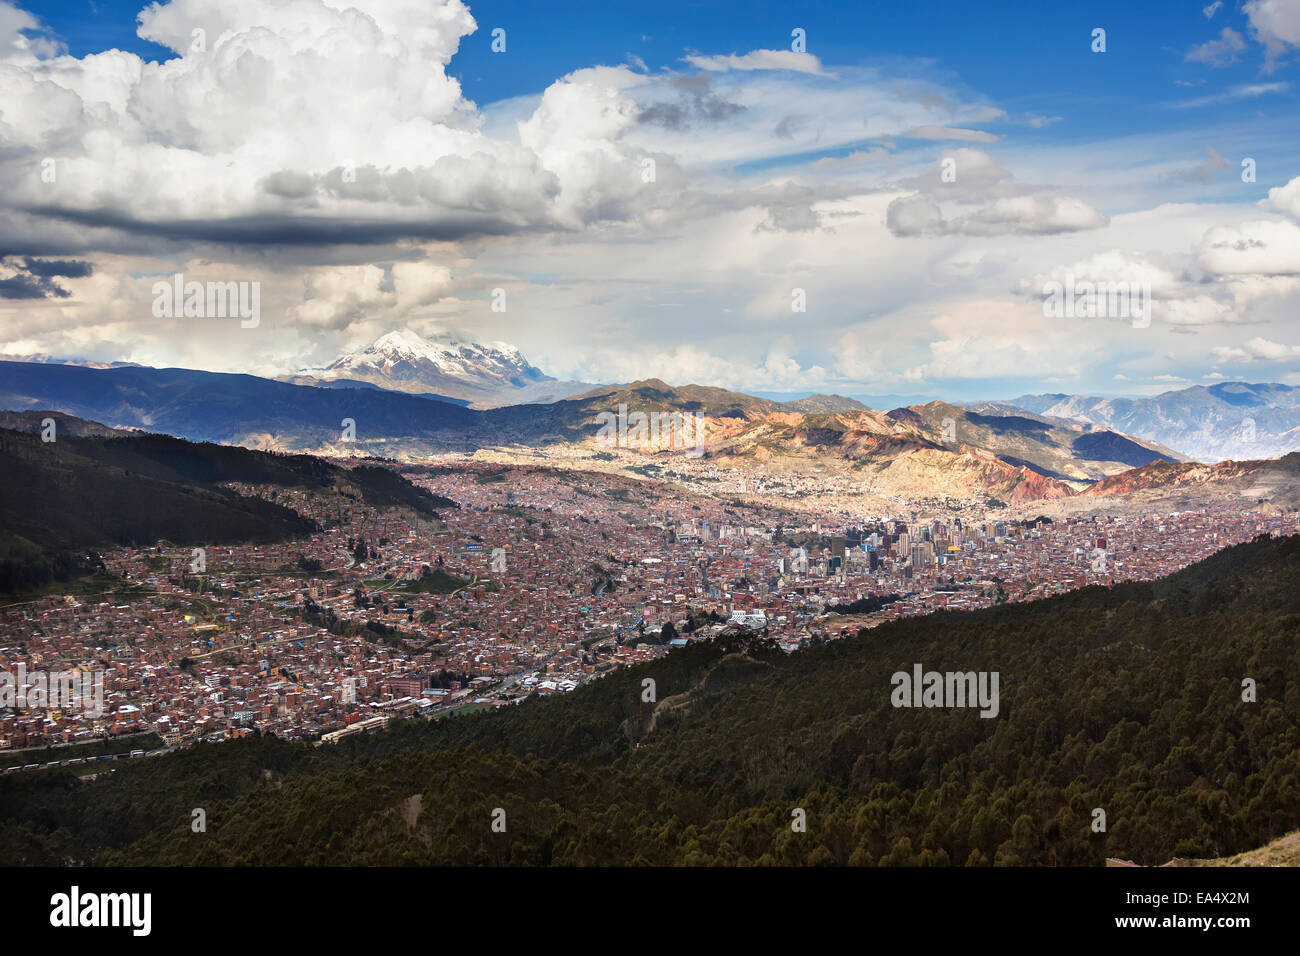 The city of La Paz with Illimani rising in the distance, the highest peak in Bolivia; La Paz, Bolivia - Stock Image